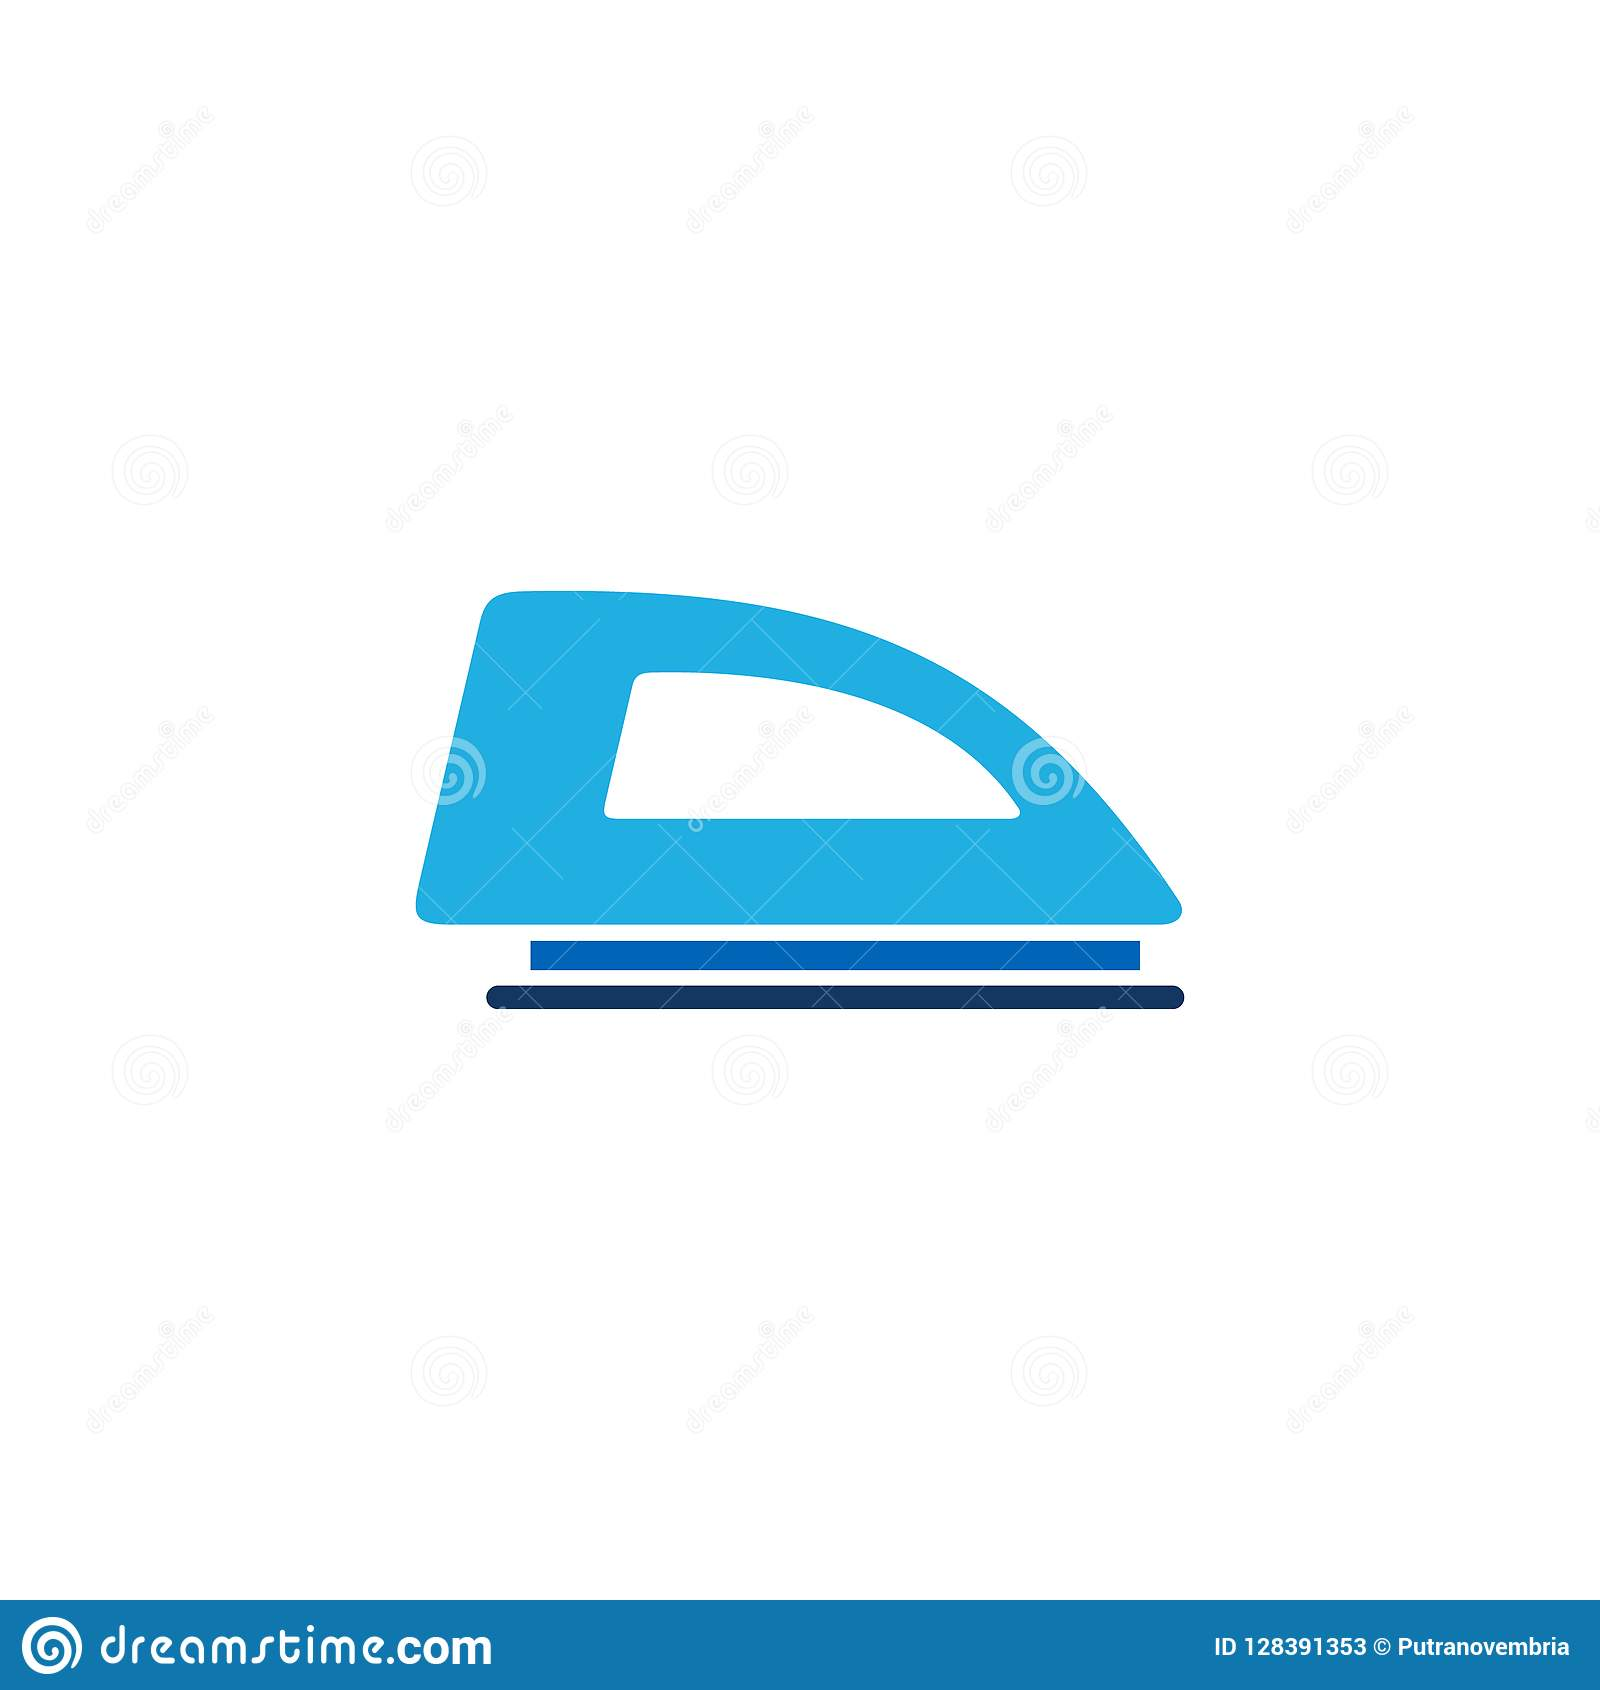 iron laundry logo icon design stock vector illustration of creative basket 128391353 https www dreamstime com iron laundry logo icon design can be used as complement to image128391353